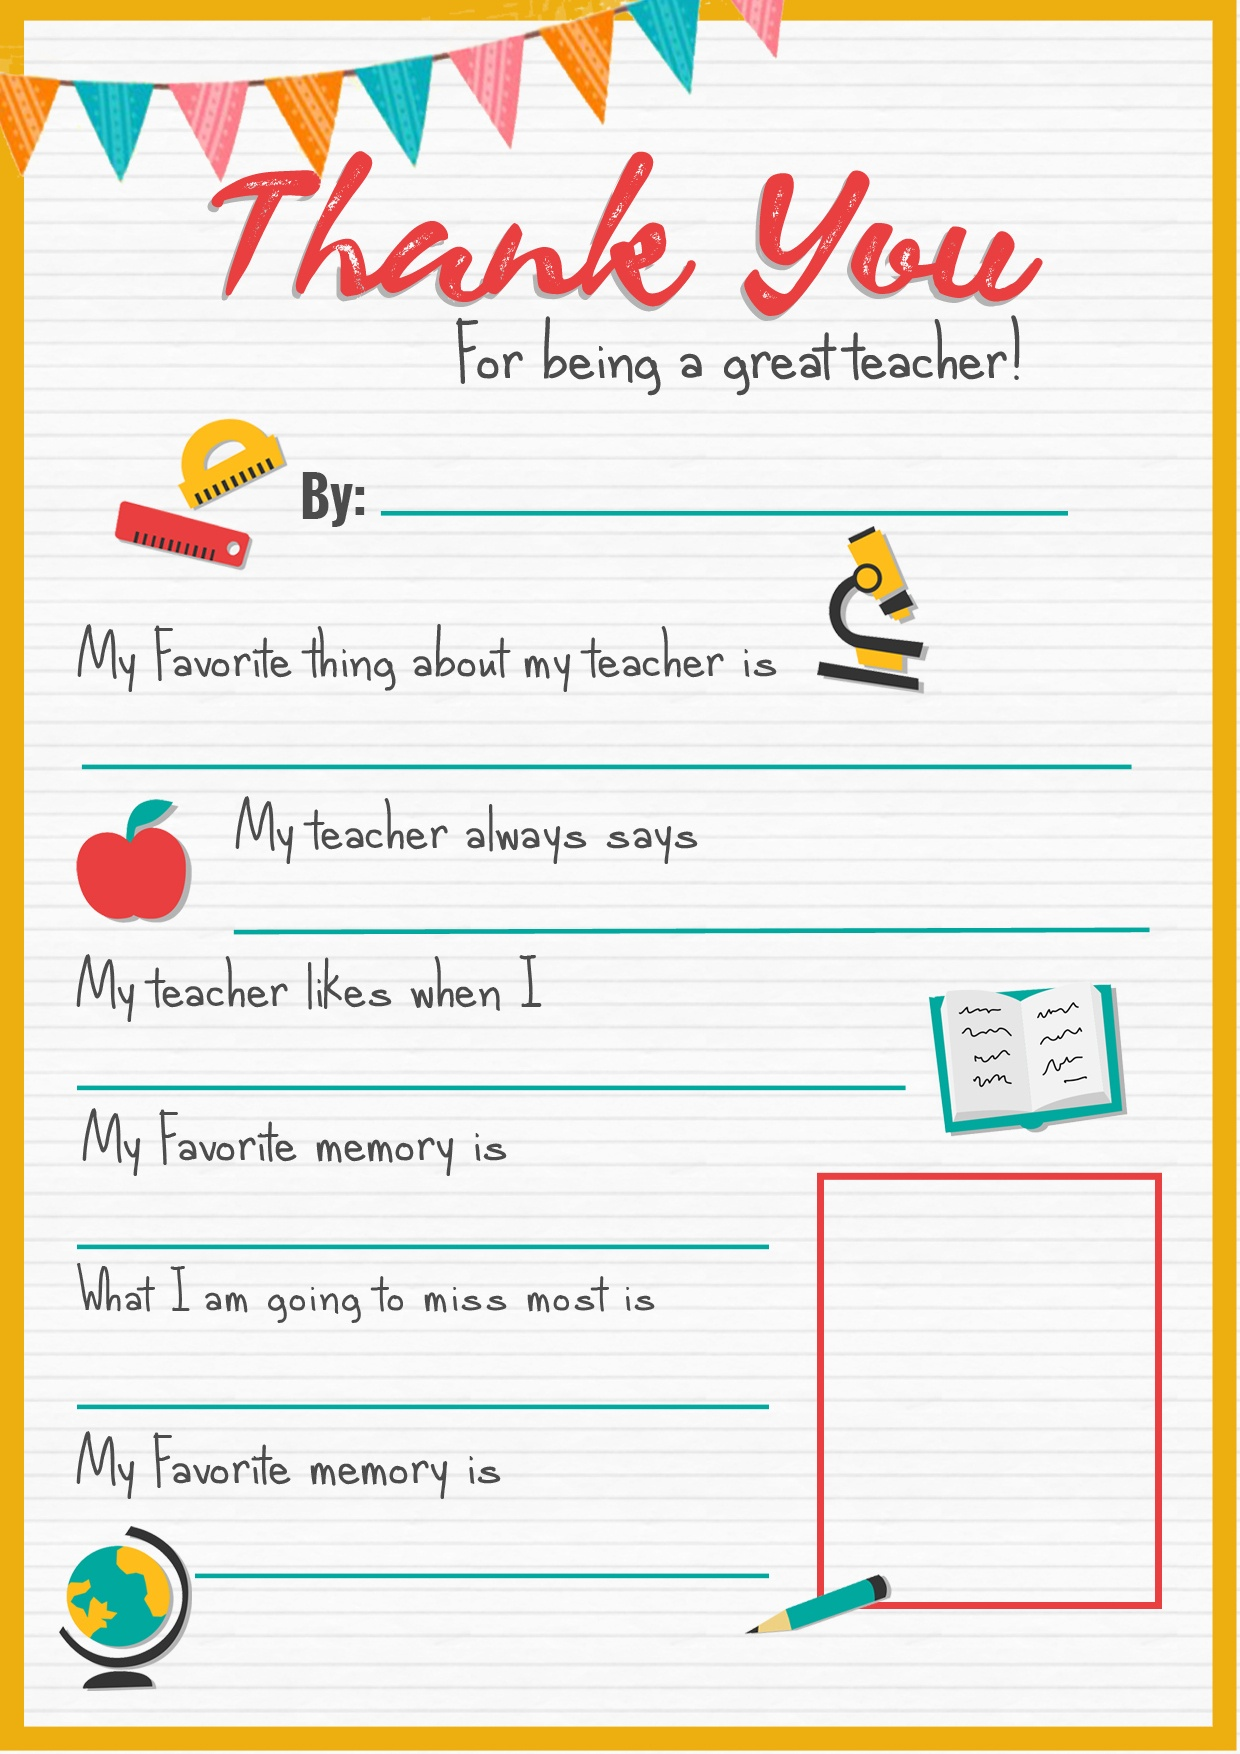 Thank You Teacher - A Free Printable   Stay At Home Mum - All About My Teacher Free Printable